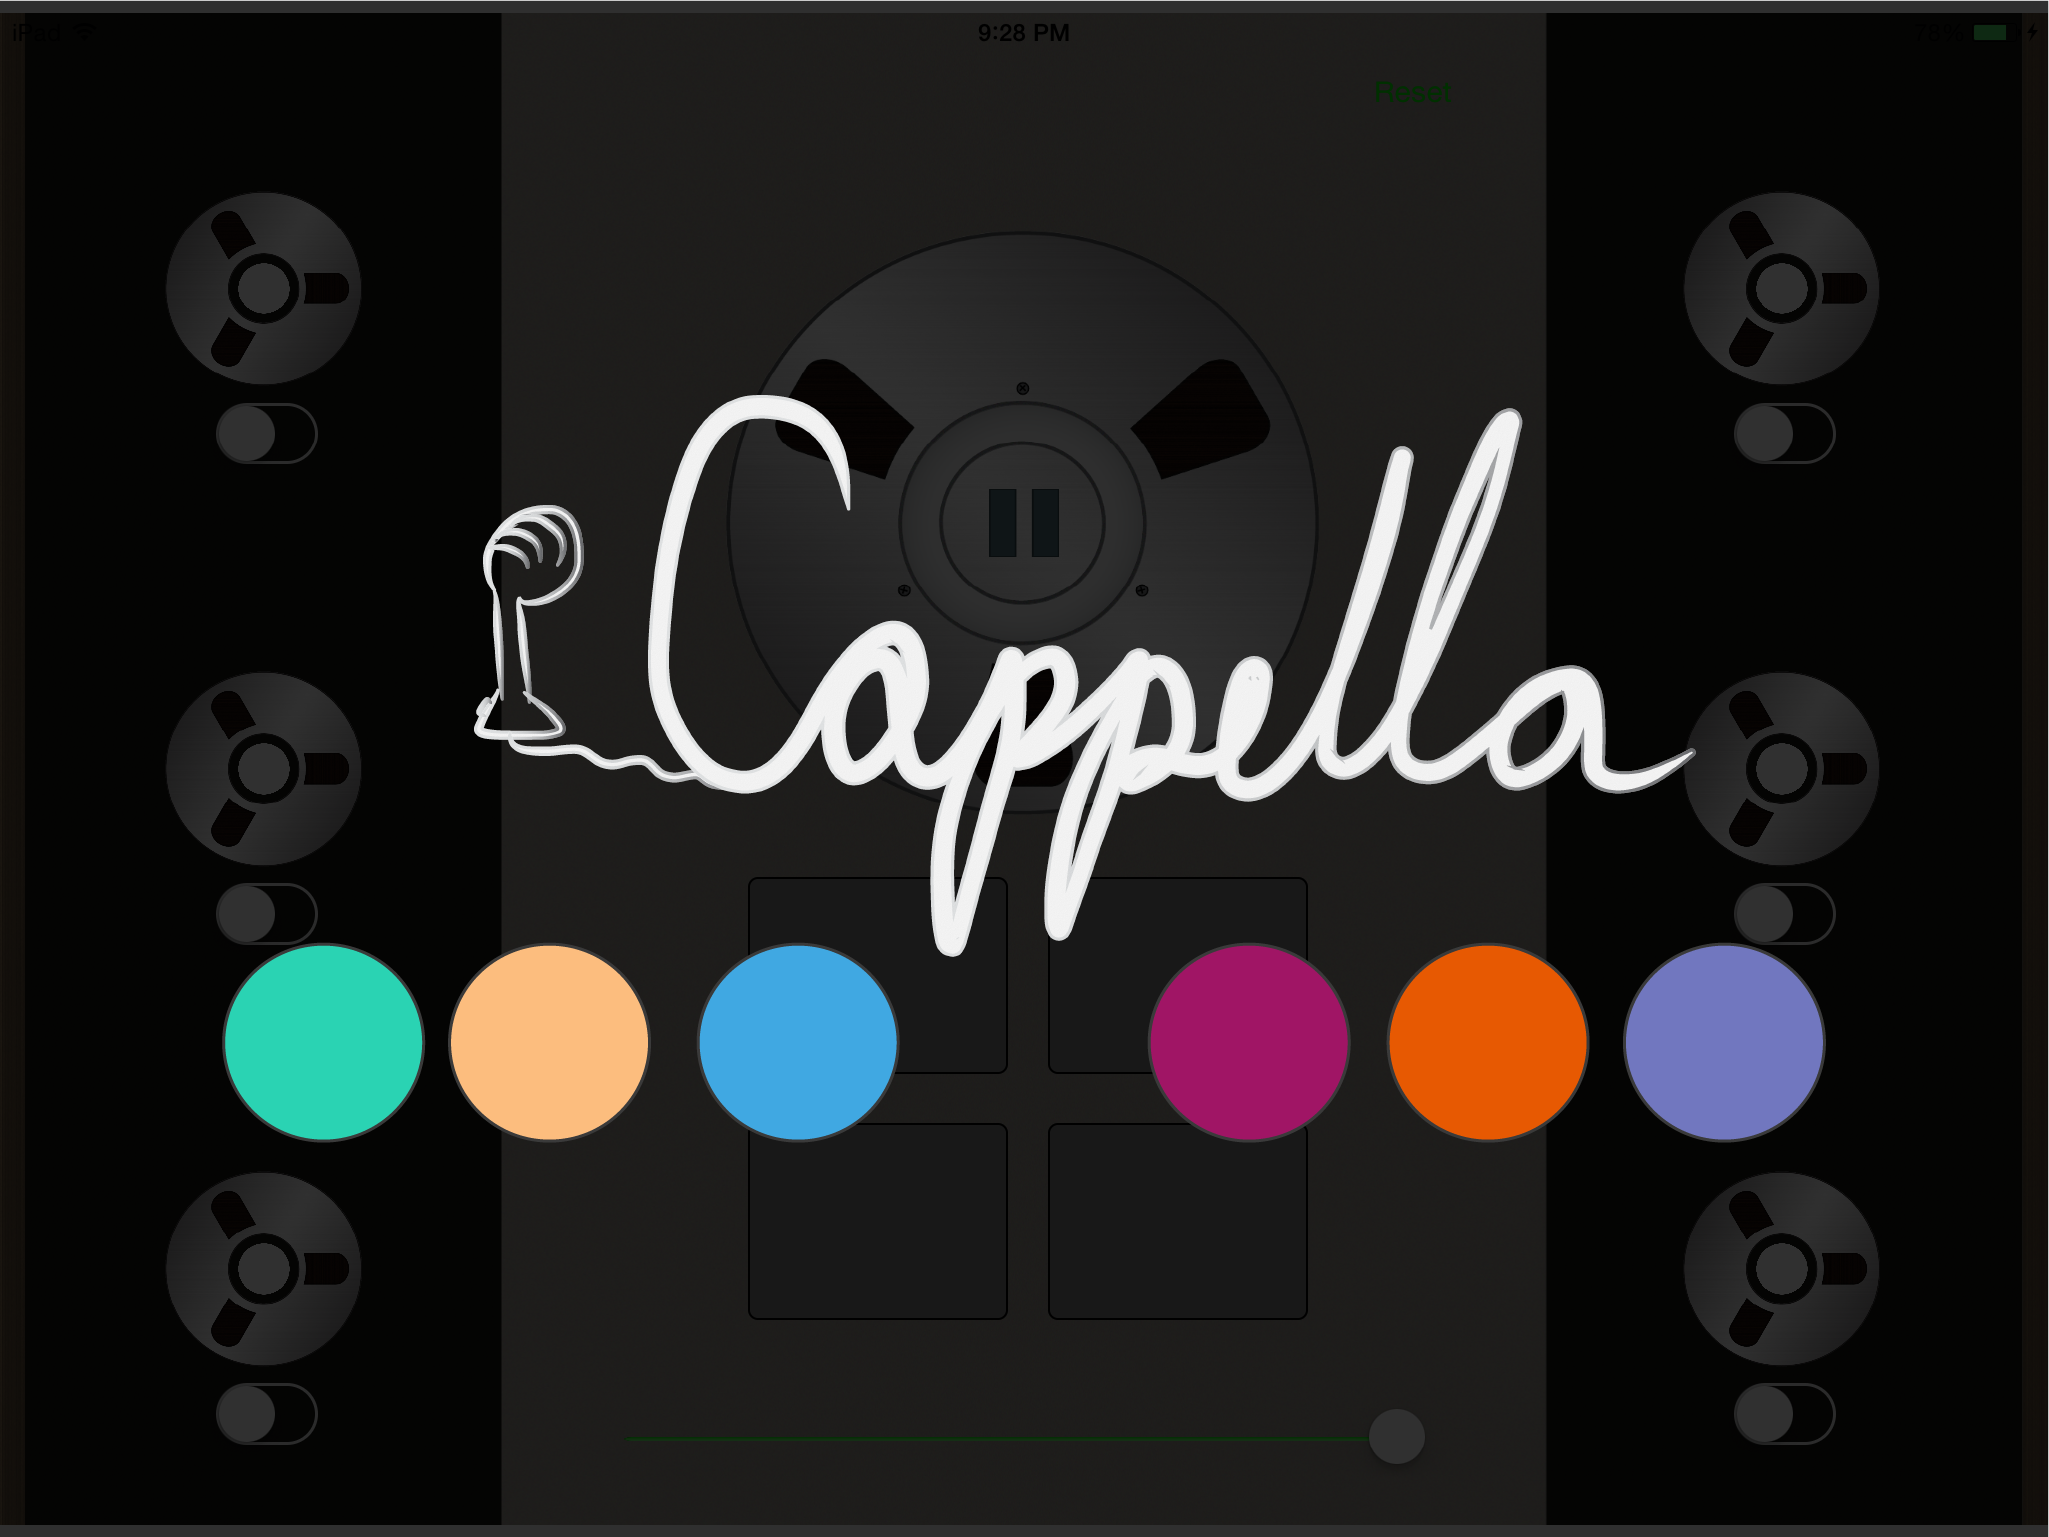 iCappella launch FINAL.png